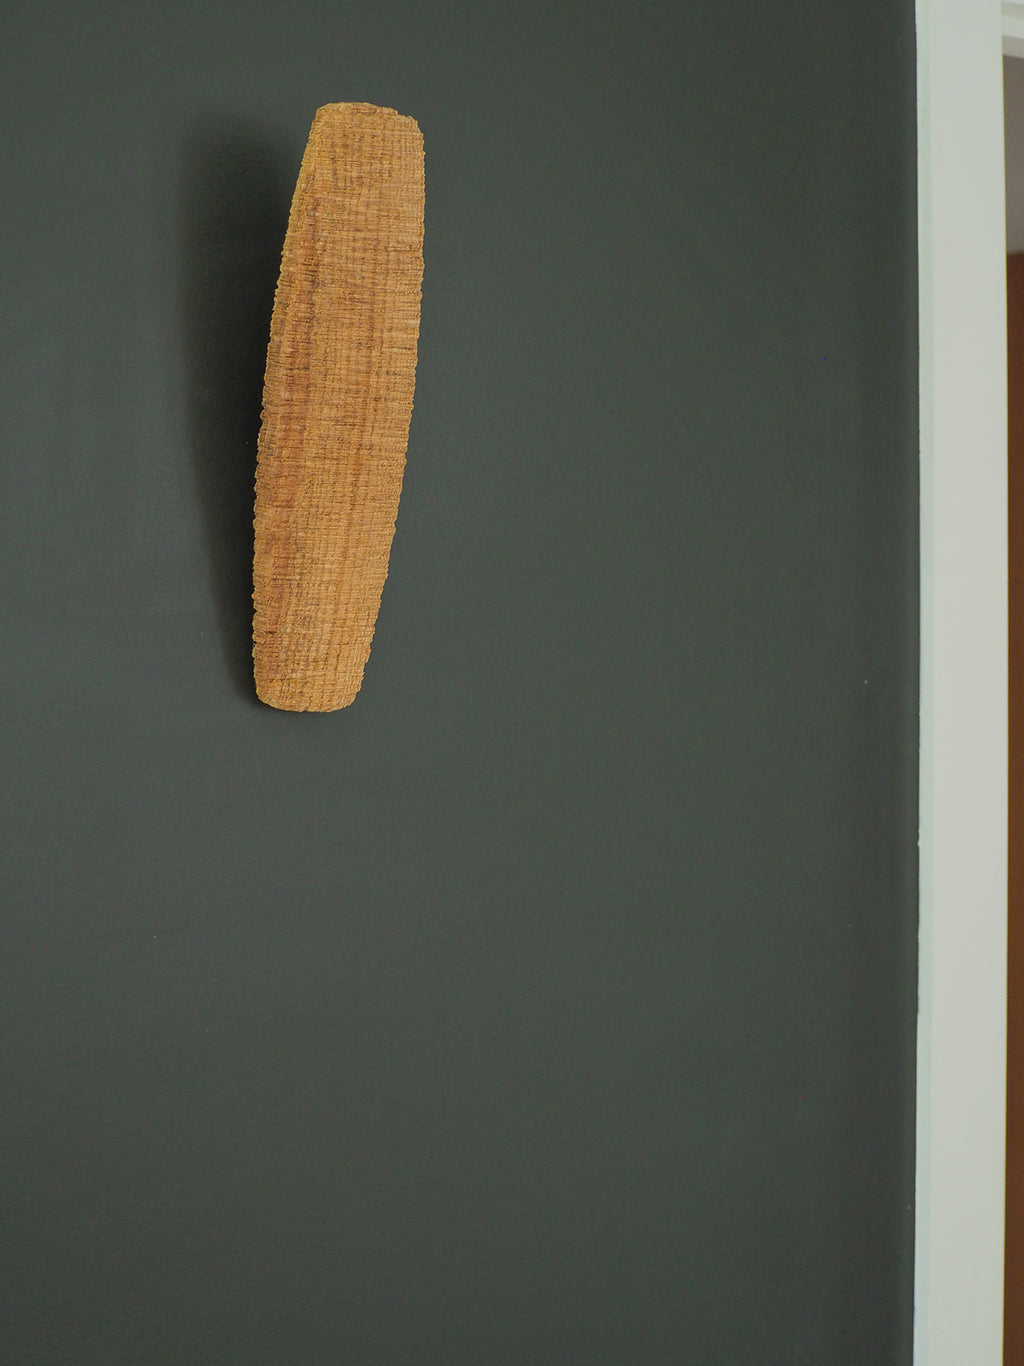 Wall Hanging Wood Sculpture